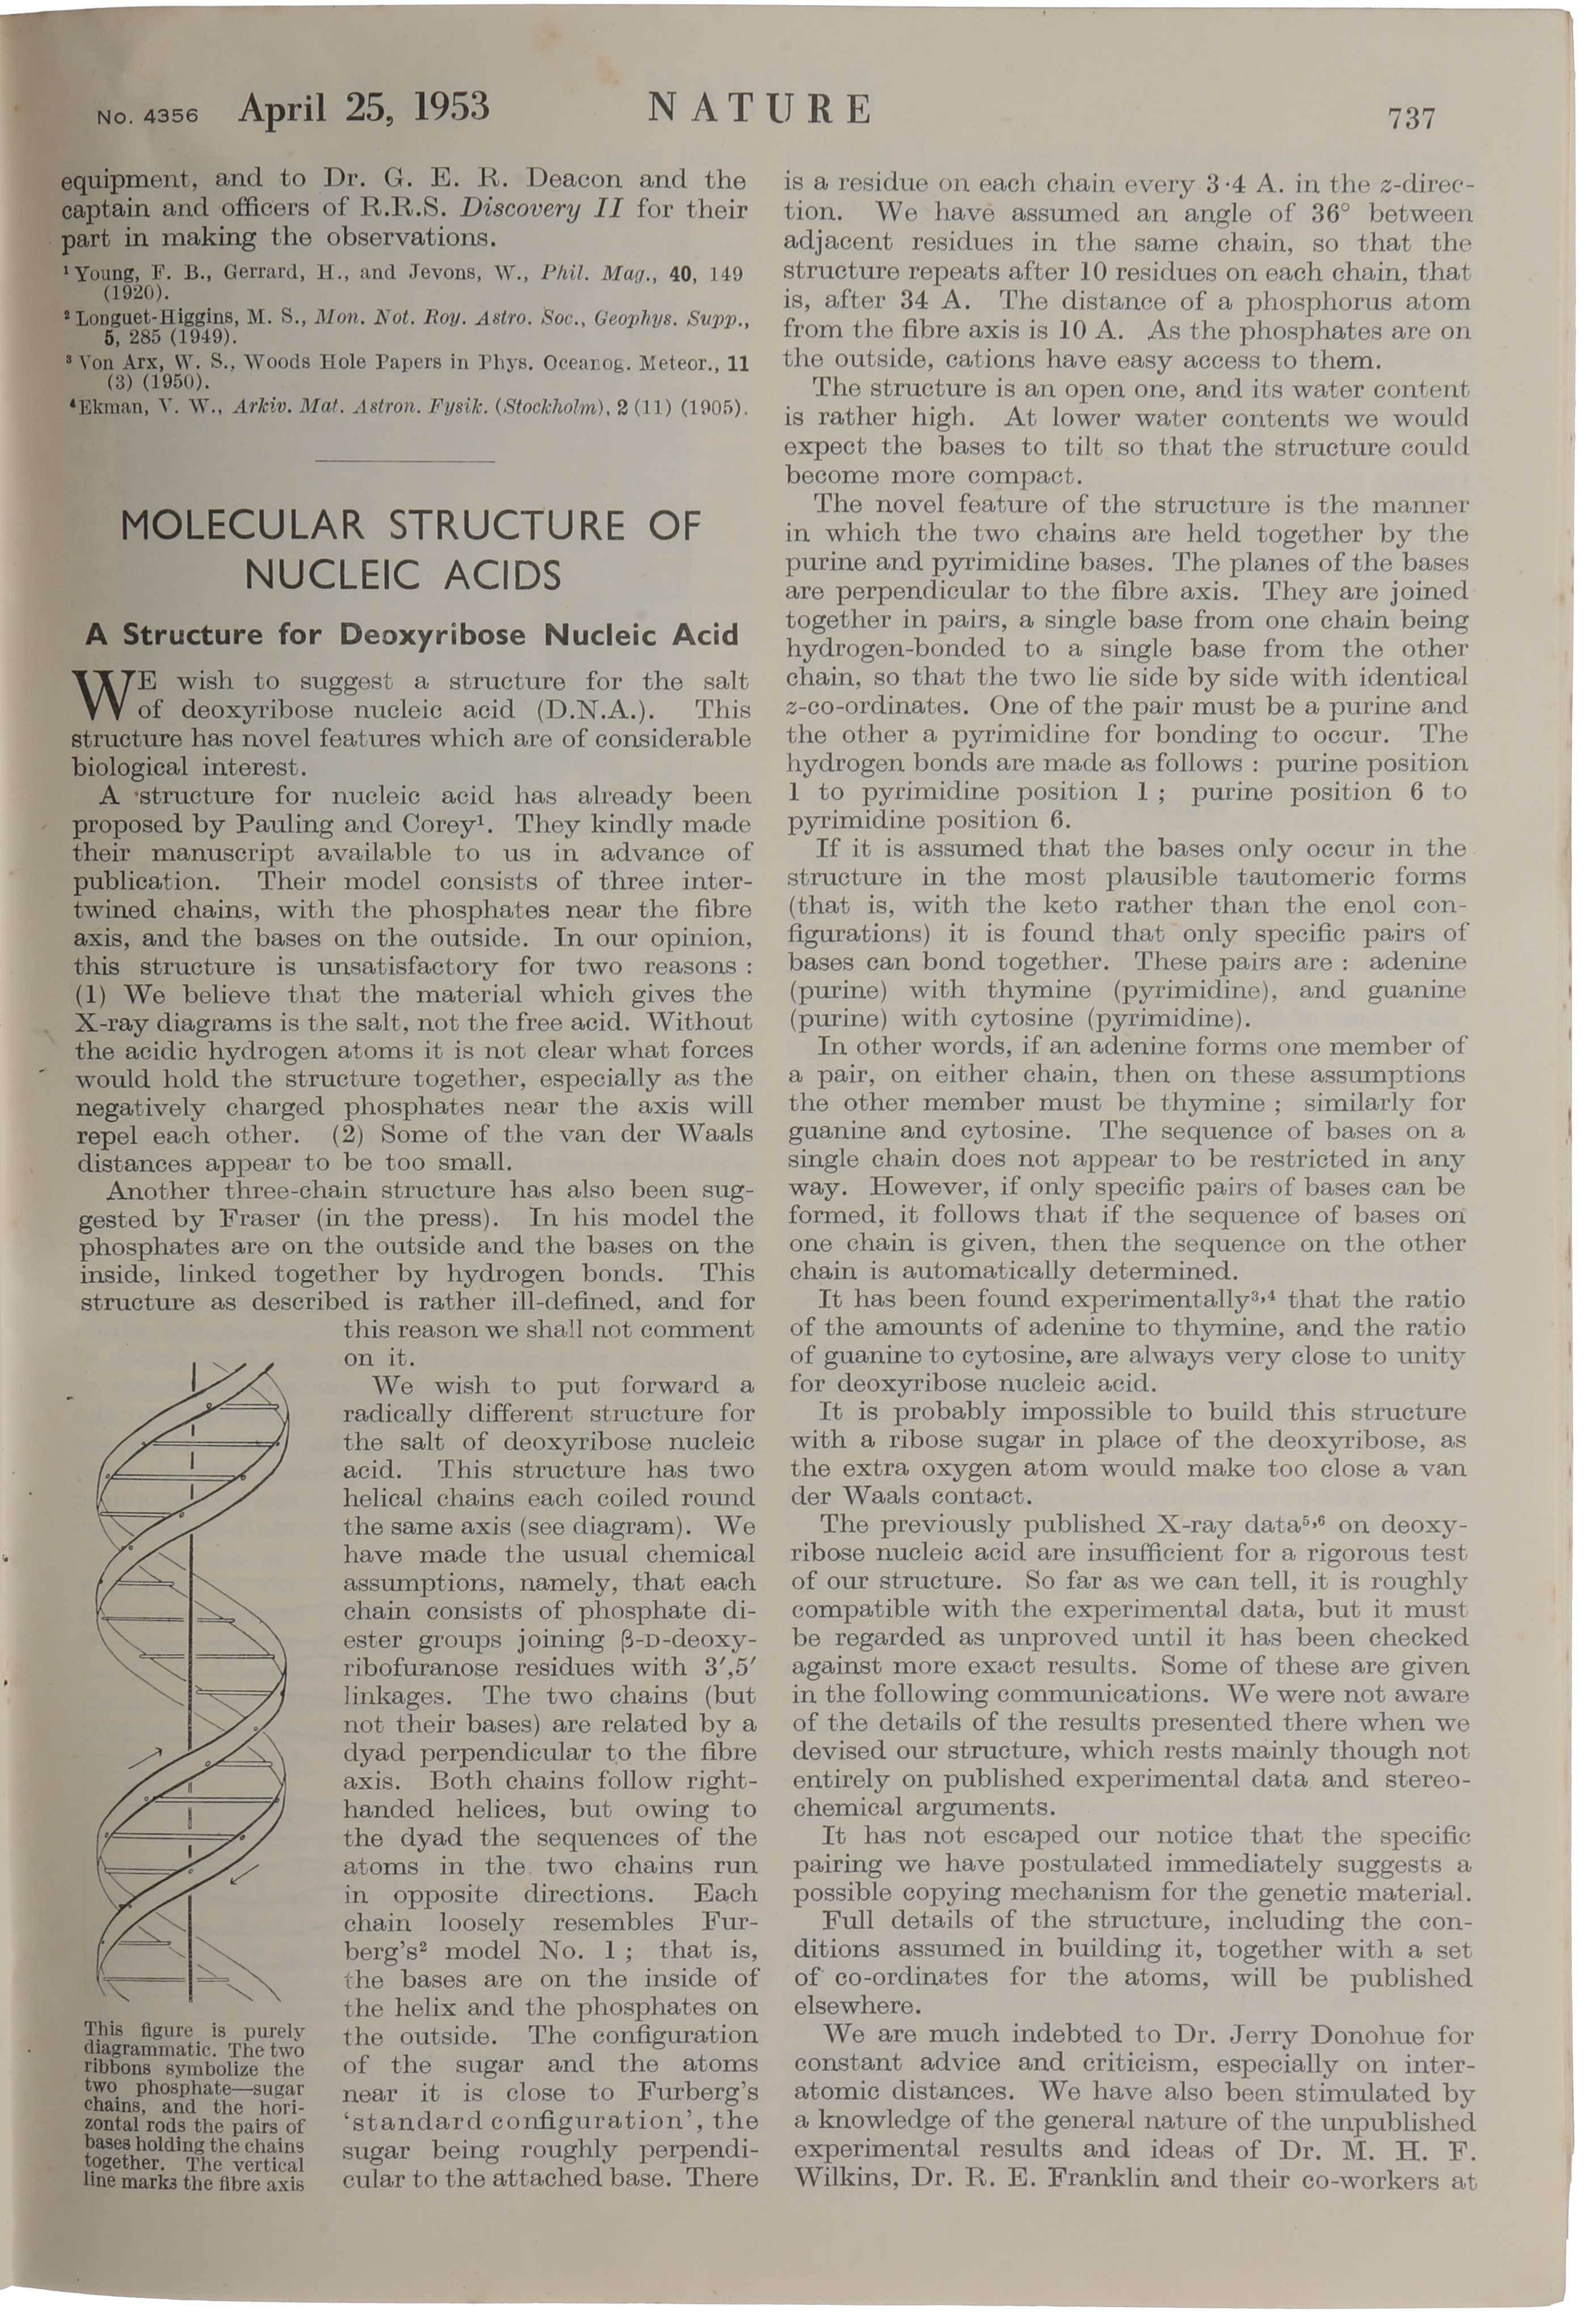 [The six milestone papers on the structure of DNA in original wrappers:] 1. WATSON, J. D. & CRICK, F. H. C. Molecular Structure of Nucleic Acids: A Structure for Deoxyribose Nucleic Acid; 2. WILKINS, M. H. F., STOKES, A. R. & WILSON, H. R. Molecular Structure of Deoxypentose Nucleic Acids; 3. FRANKLIN, R. E. & GOSLING, R. G. Molecular Configuration in Sodium Thymonucleate, pp. 737-41 in Nature, Vol. 171, No. 4356, April 25, 1953. 4. WATSON, J. D. & CRICK, F. H. C. Genetical Implications of the Structure of Deoxyribonucleic Acid, pp. 964-7 in Nature, Vol. 171, No. 4361, May 30, 1953. 5. FRANKLIN, R. E. & GOSLING, R. G. Evidence for 2-Chain Helix in Crystalline Structure of Sodium Deoxyribonucleate, pp. 156-7 in Nature, Vol. 172, No. 4369, July 25, 1953. 6. WILKINS, M. H. F., SEEDS, W. E. STOKES, A. R. & WILSON, H. R. Helical Structure of Crystalline Deoxypentose Nucleic Acid, pp. 759-62 in Nature, Vol. 172, No. 4382, October 24, 1953. WATSON, CRICK, WILKINS, STOKES, WILSON, FRANKLIN, GOSLING, SEEDS.